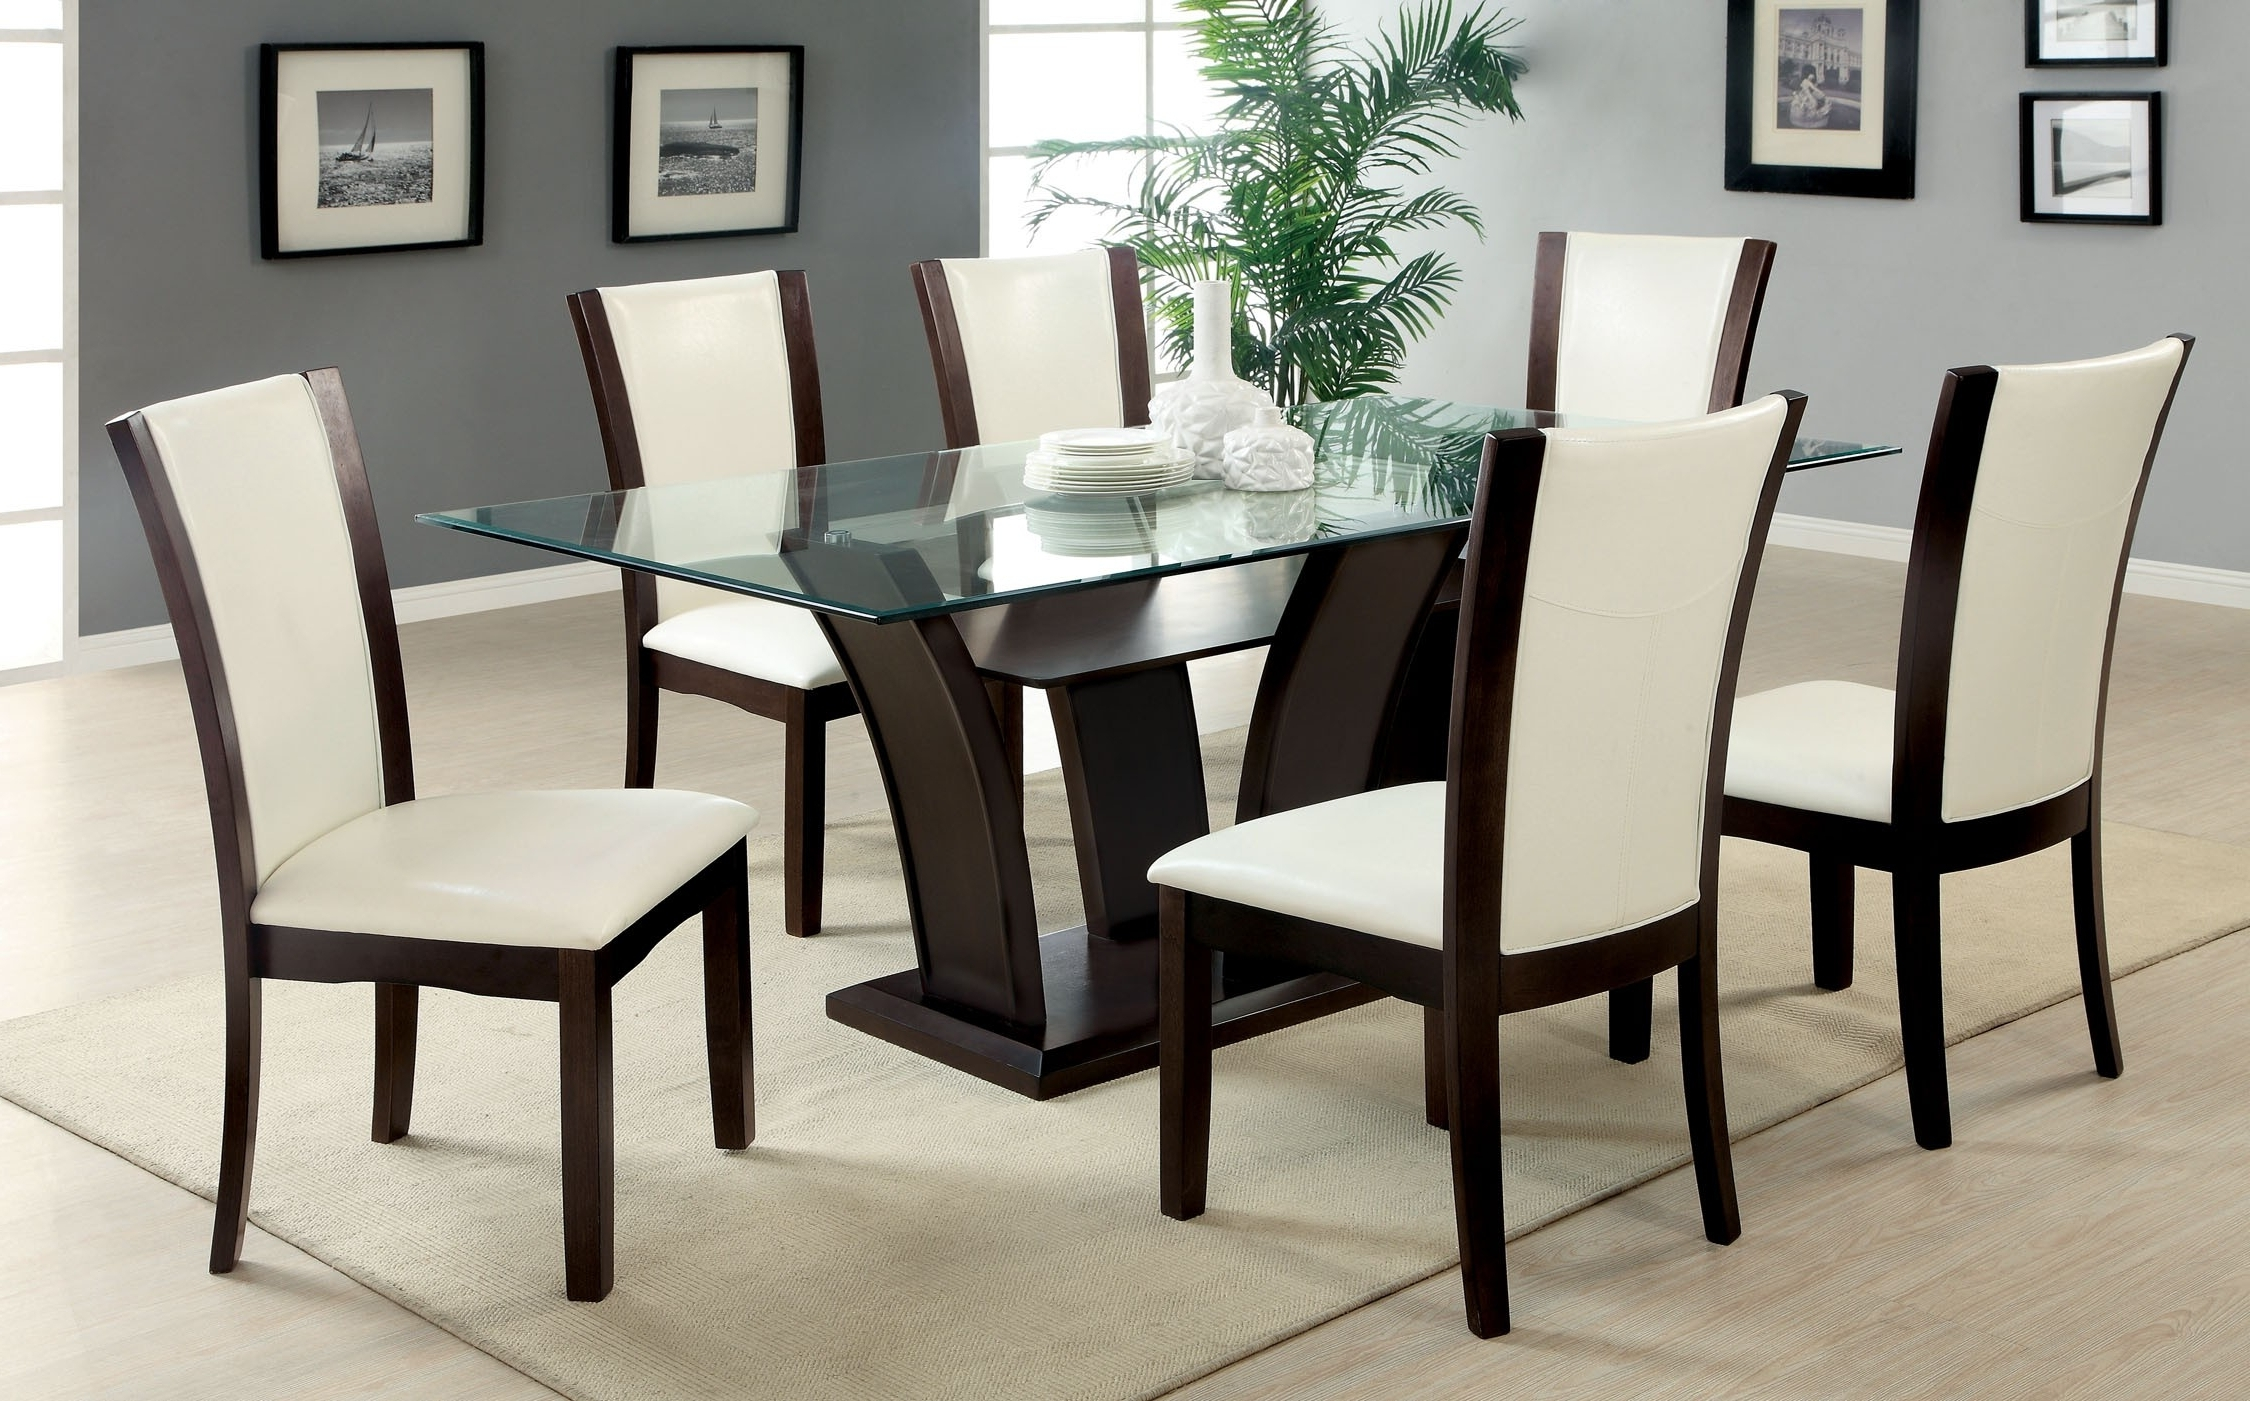 6 Seater Glass Dining Table Sets • Table Setting Ideas in Most Recent Glass Dining Tables Sets